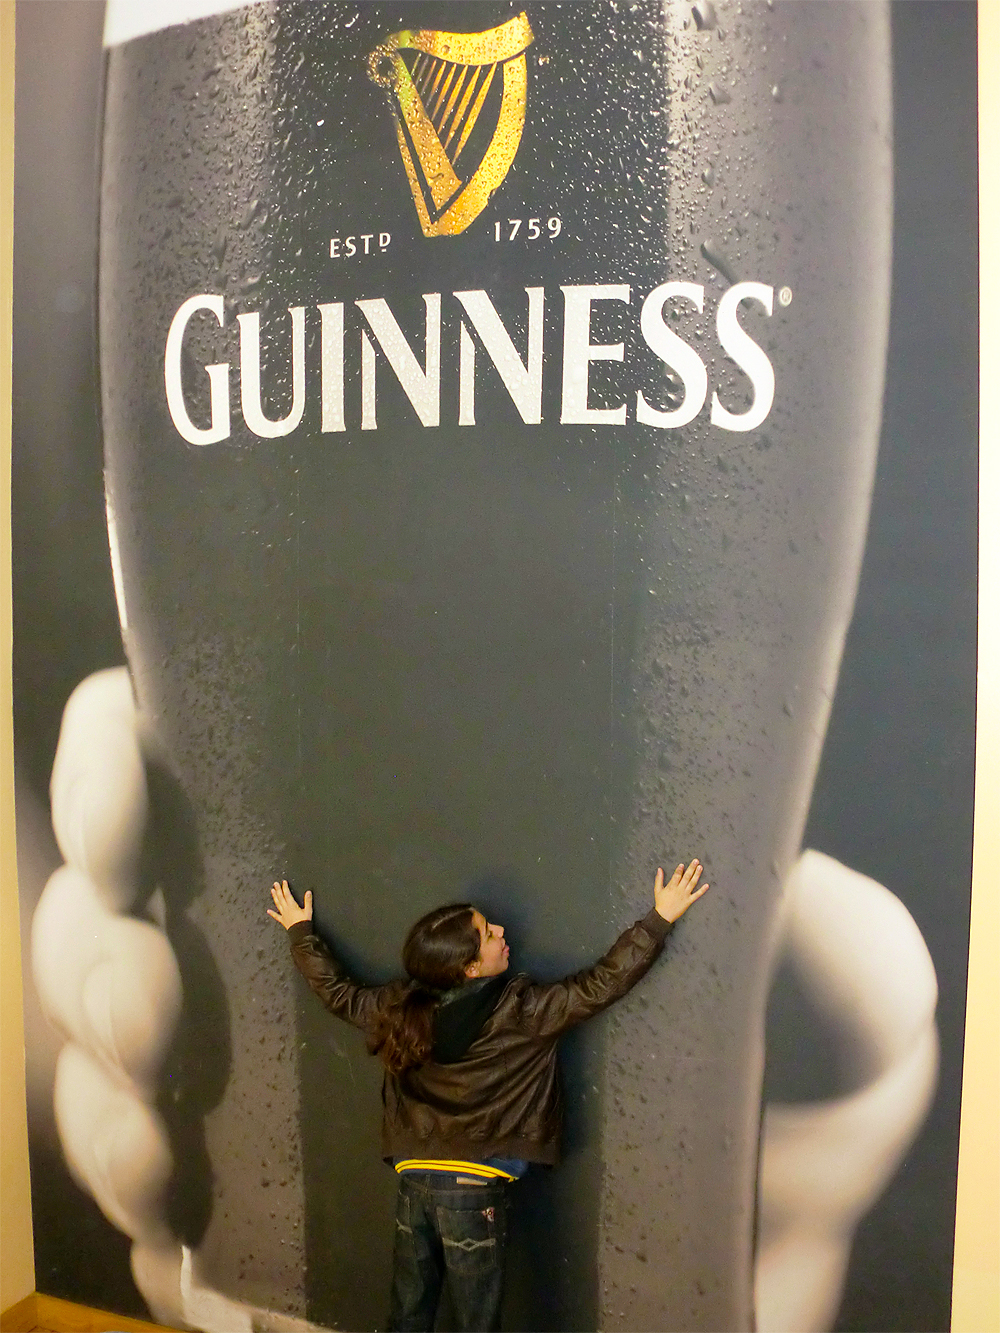 Guinness Storehouse - Dublin, Ireland.